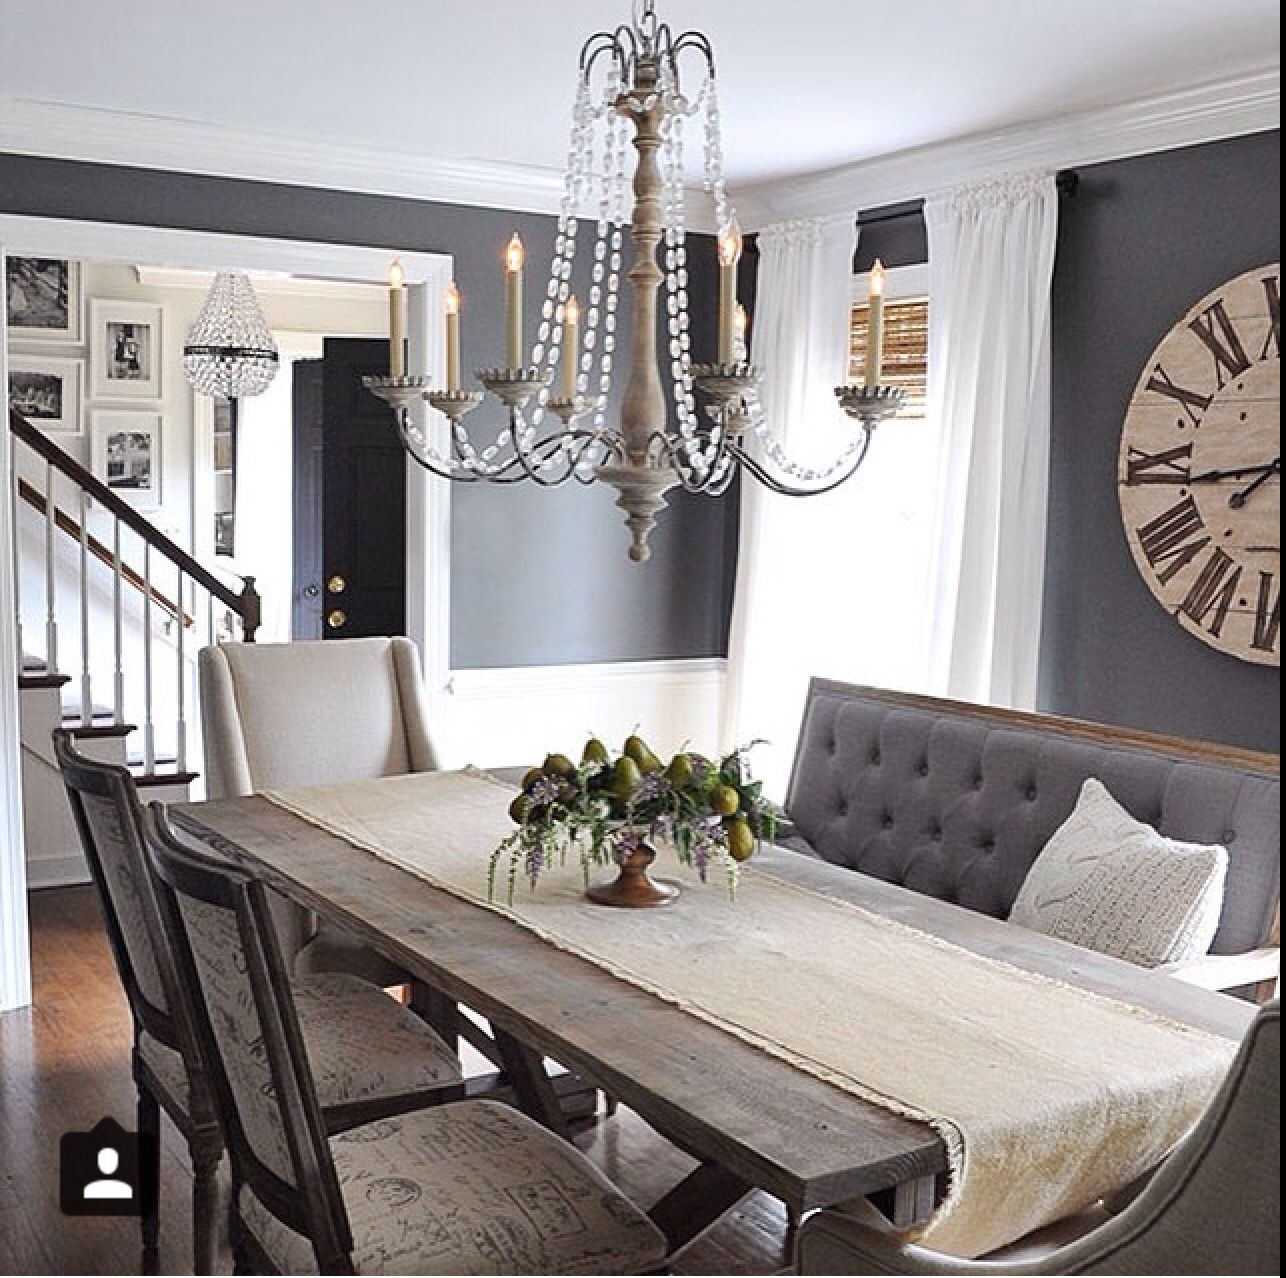 Kendall Dining Room: Dining Room Color Scheme & Decor